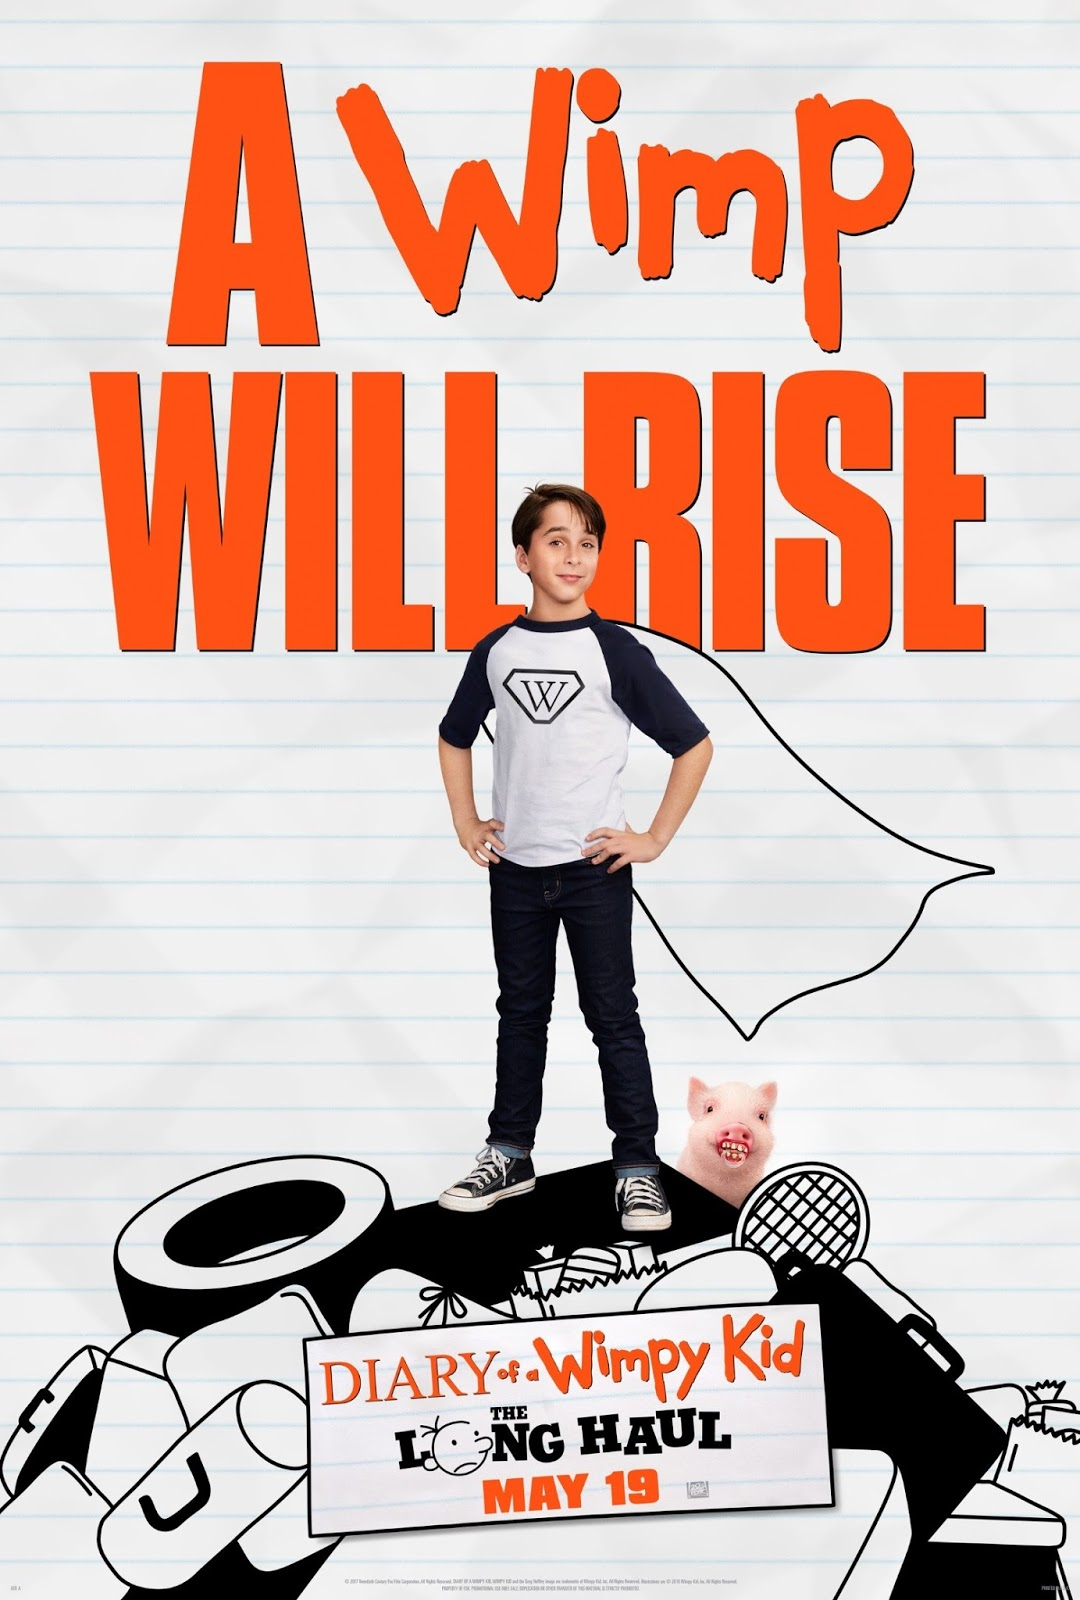 Diary of a Wimpy Kid Author Comes to Maplewood; Tickets